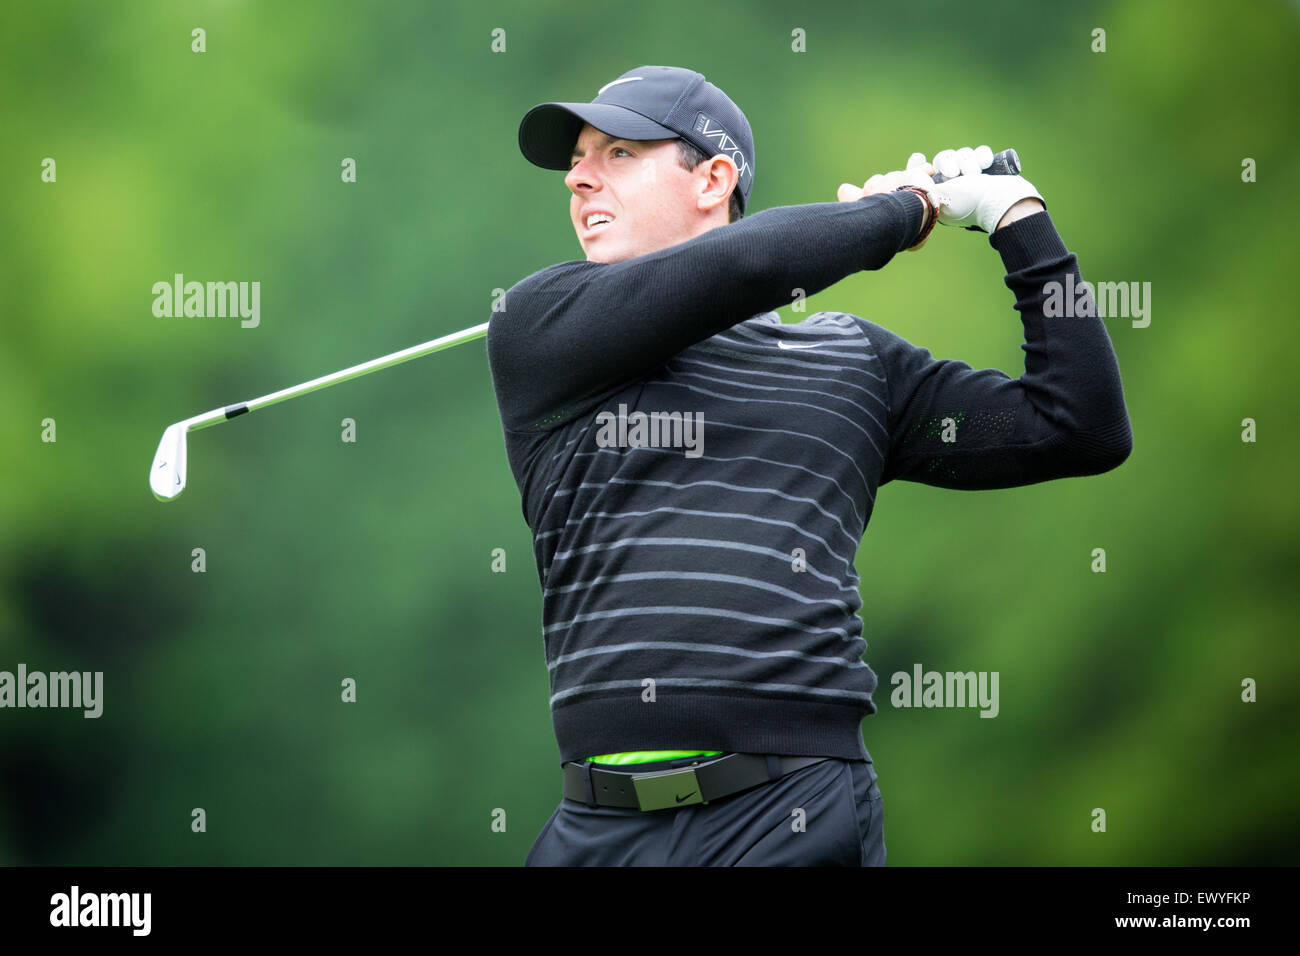 Rory McIlroy competing in the Pro-Am ahead of the BMW PGA Championship at Wentworth on May 20, 2015. - Stock Image